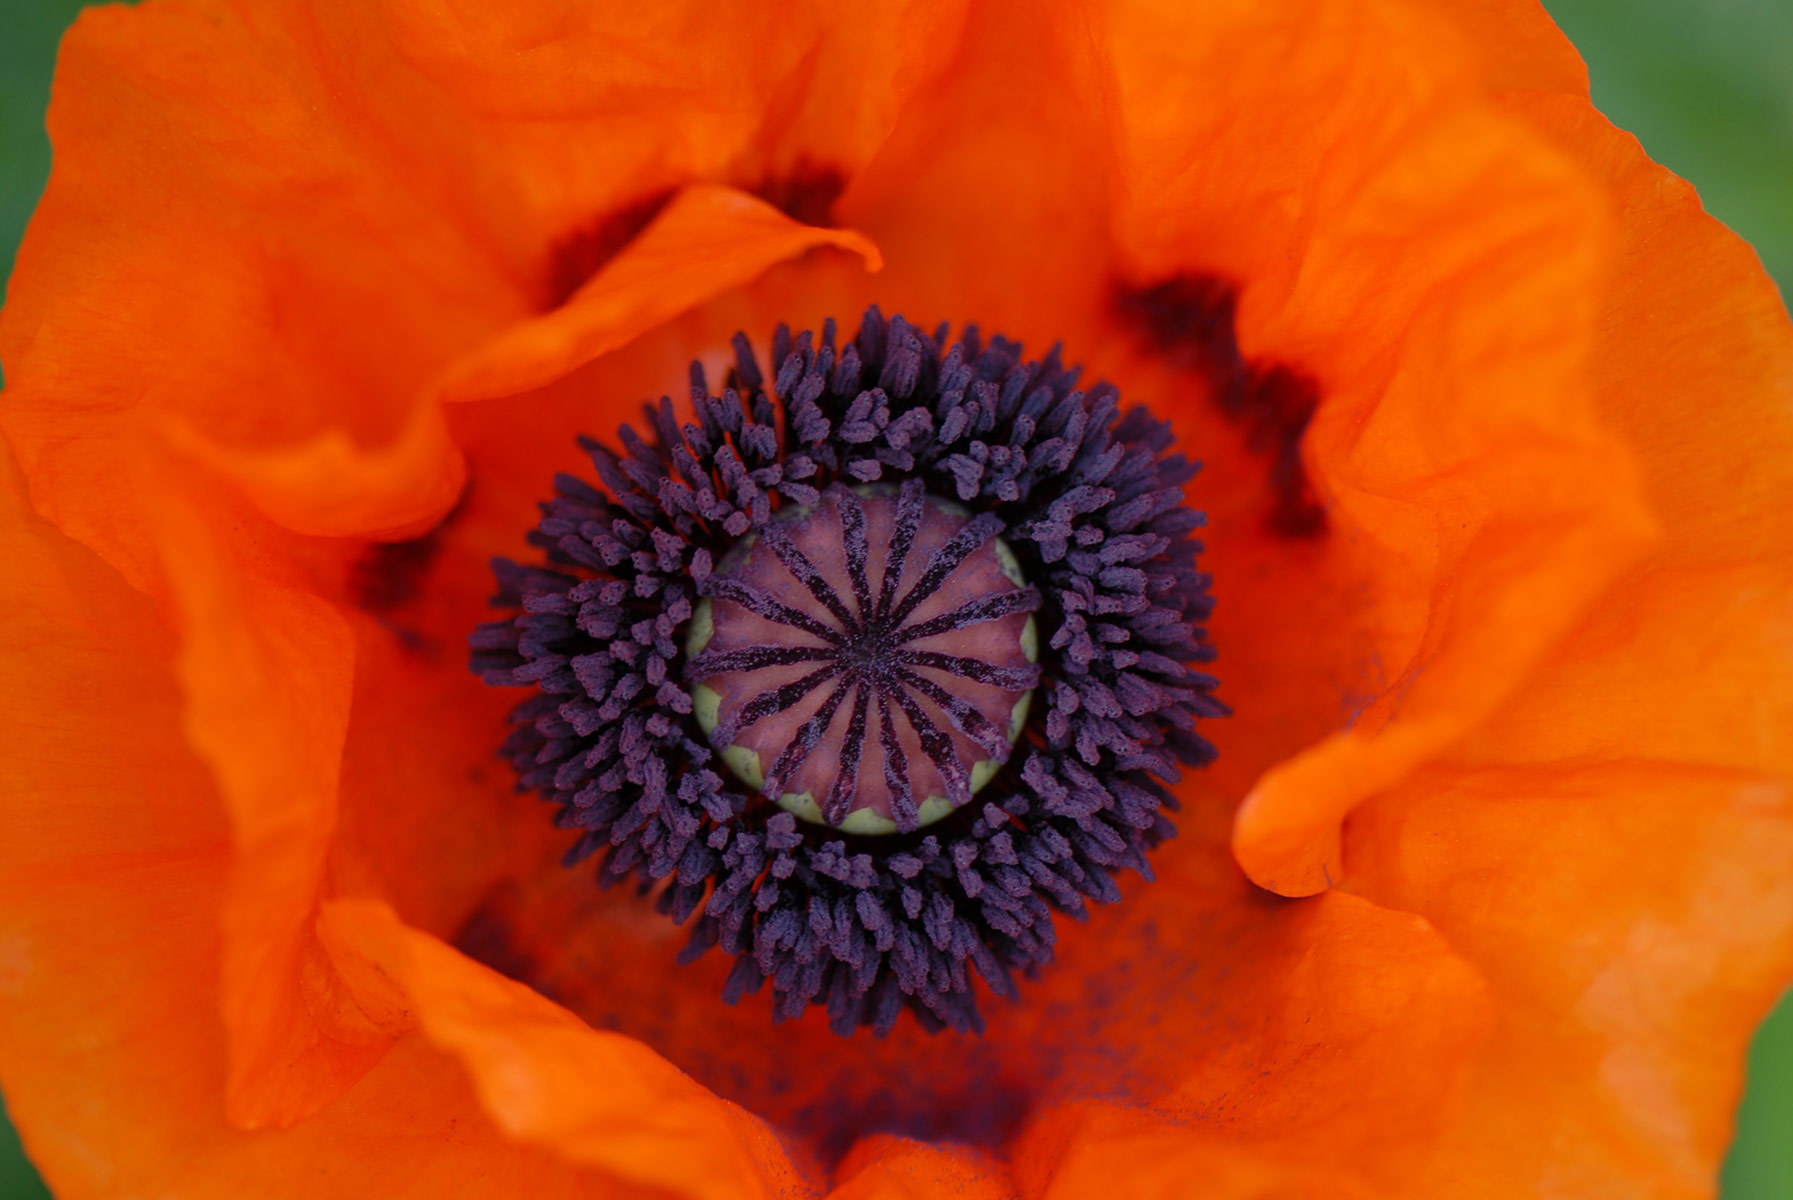 Taken at a friends garden, this poppy invited me right in to it's heart.